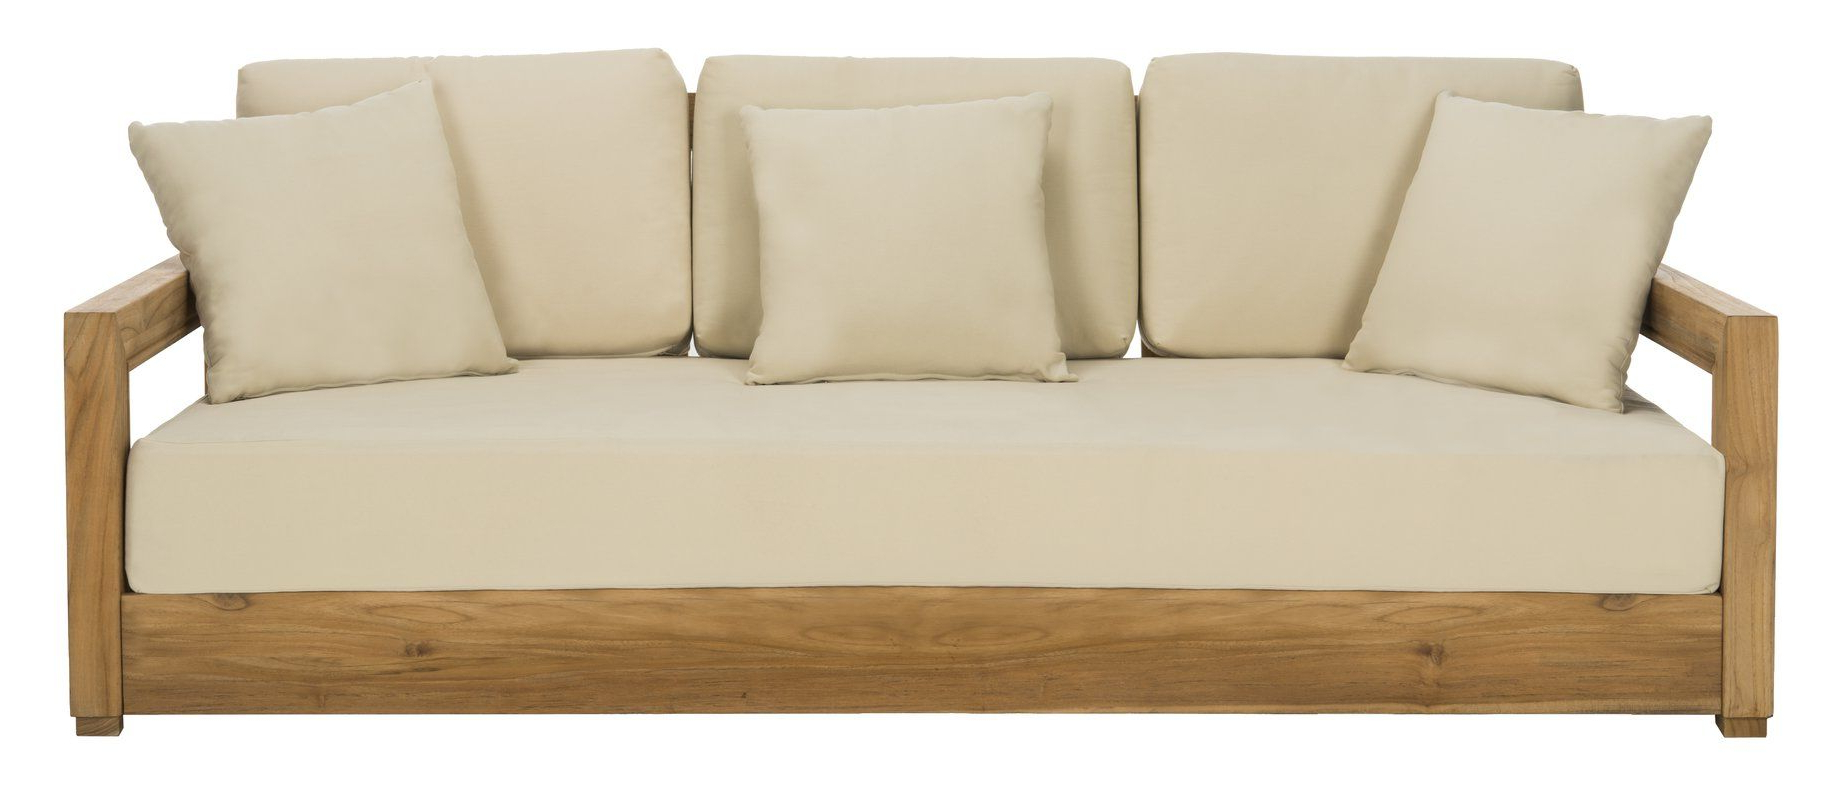 Popular Lakeland Teak Loveseats With Cushions Throughout Lakeland Patio Sofa With Cushions (View 3 of 20)